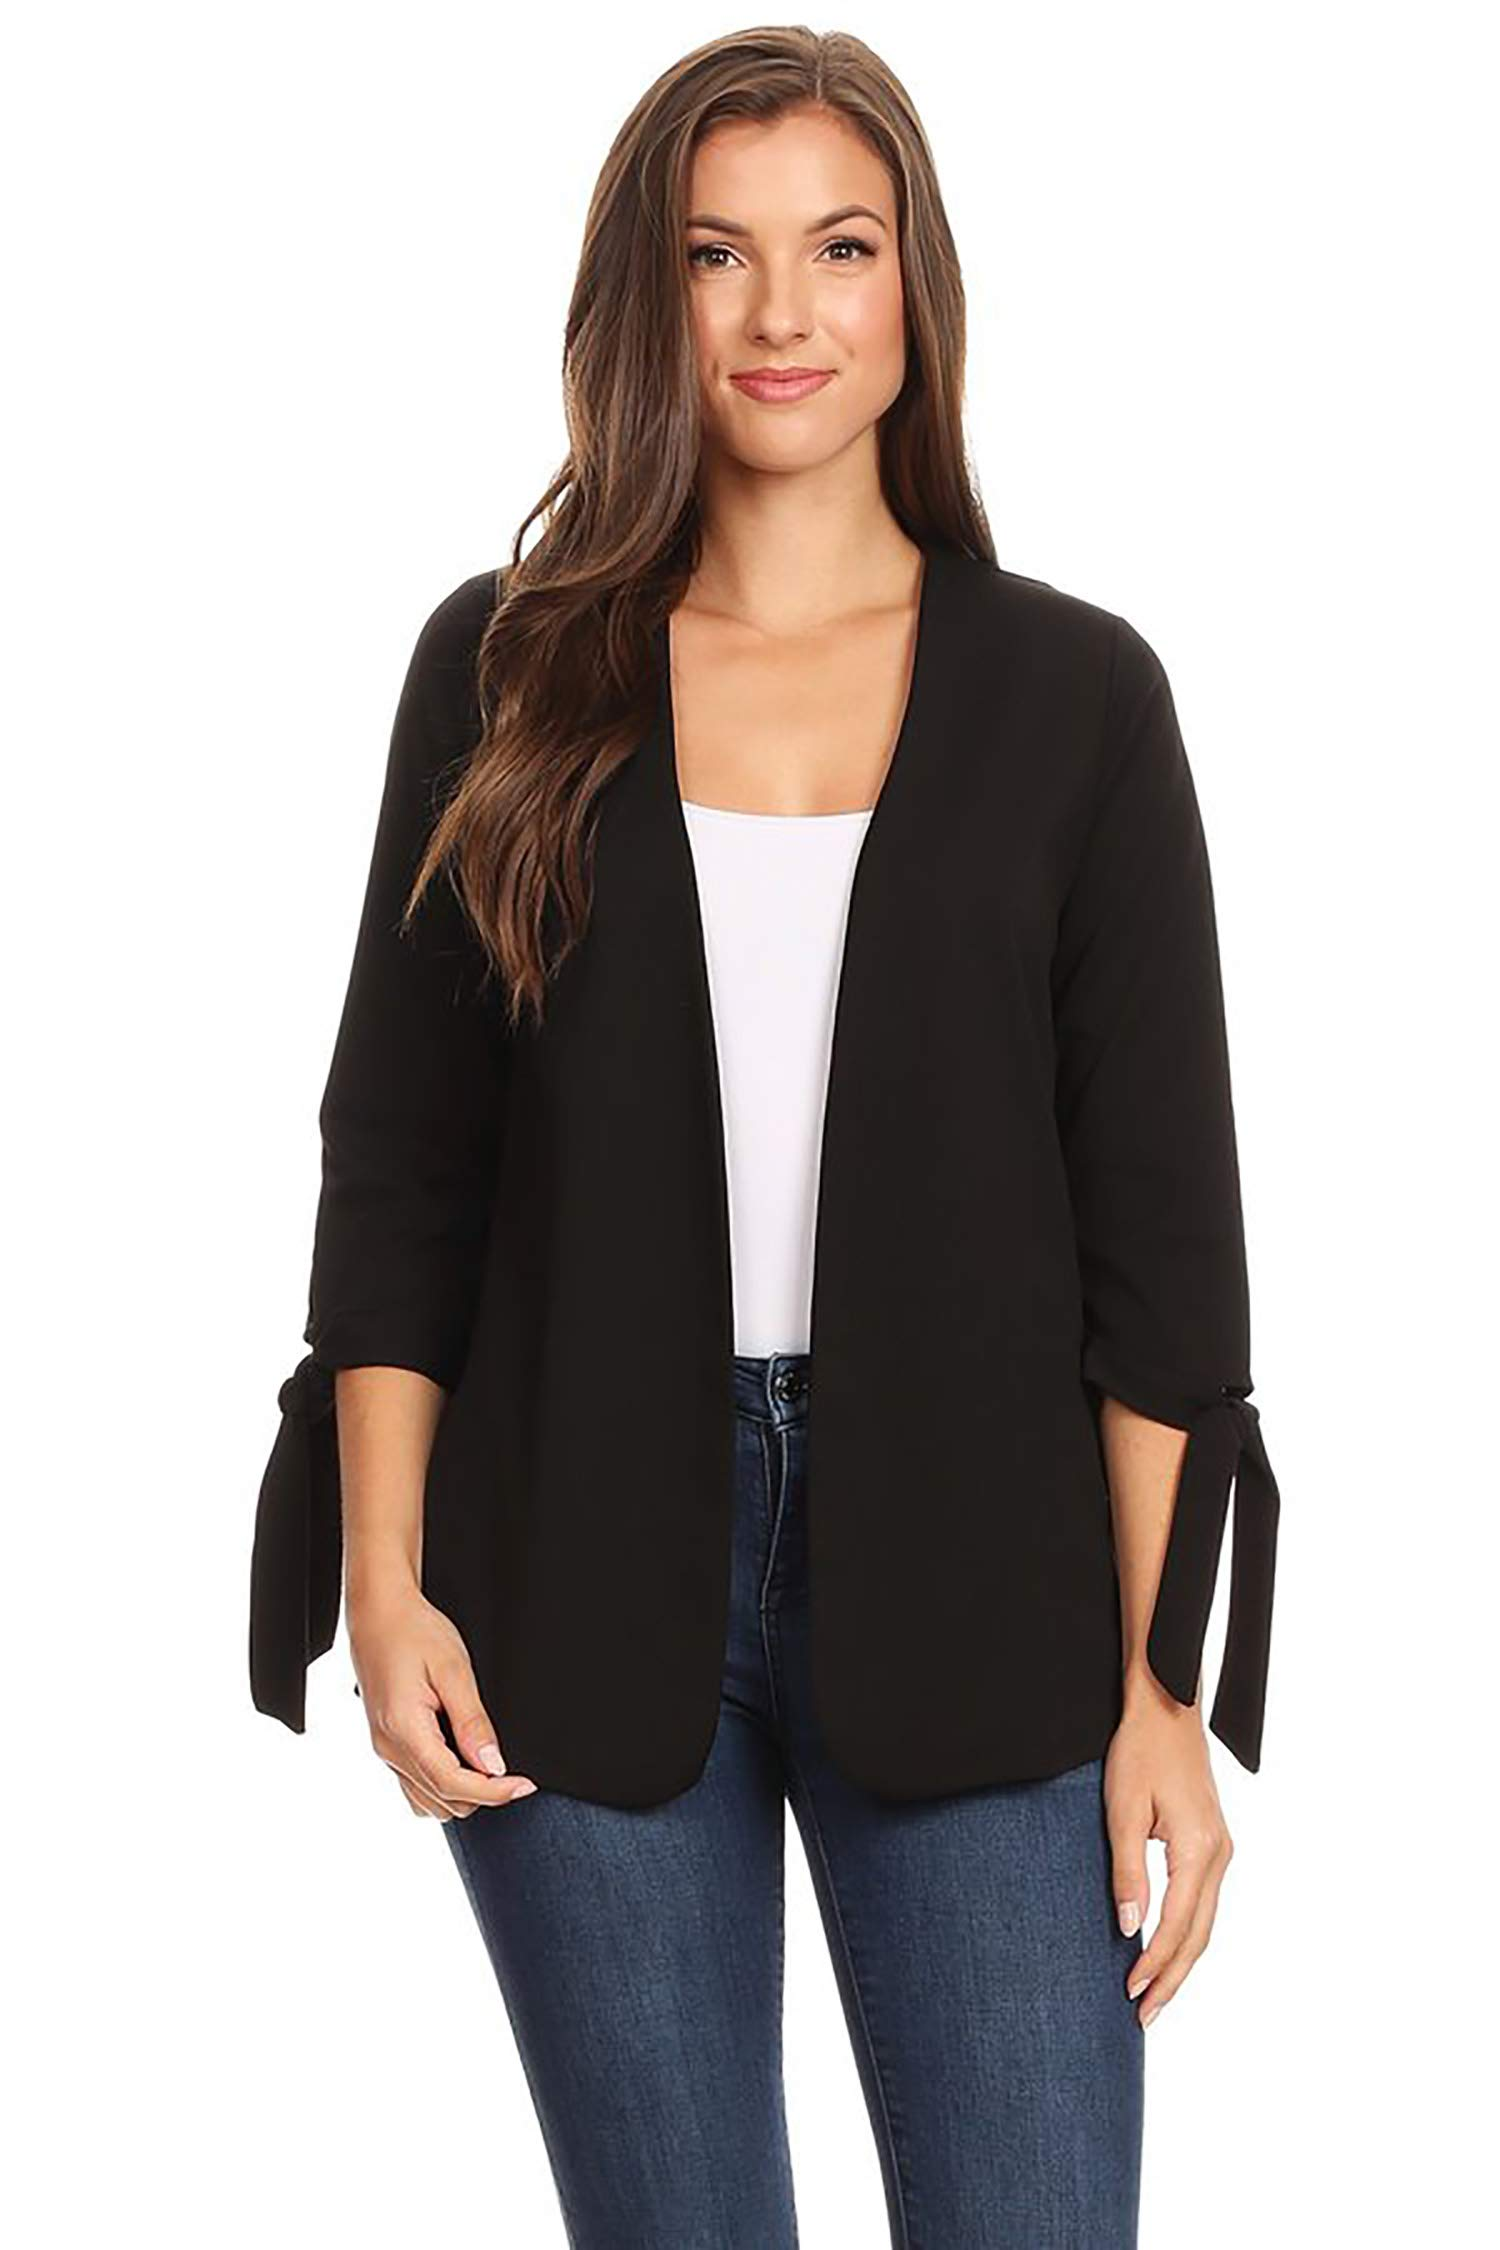 Solid Casual Collarless Loose Fit Open Front Cardigan/Made in USA Black M